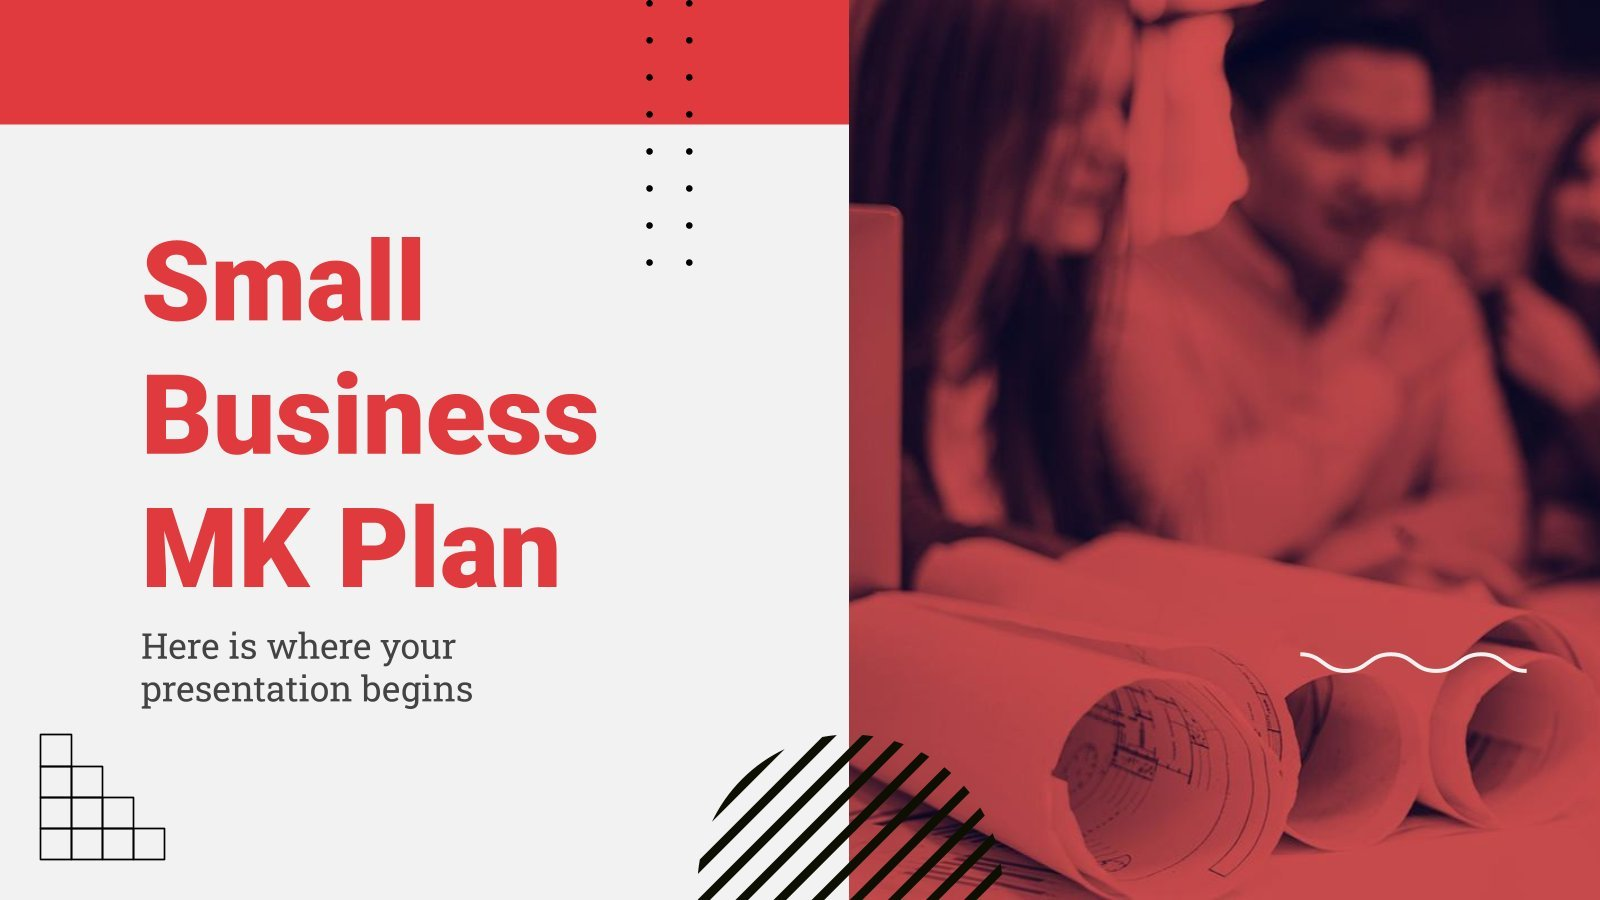 Small Business MK Plan presentation template